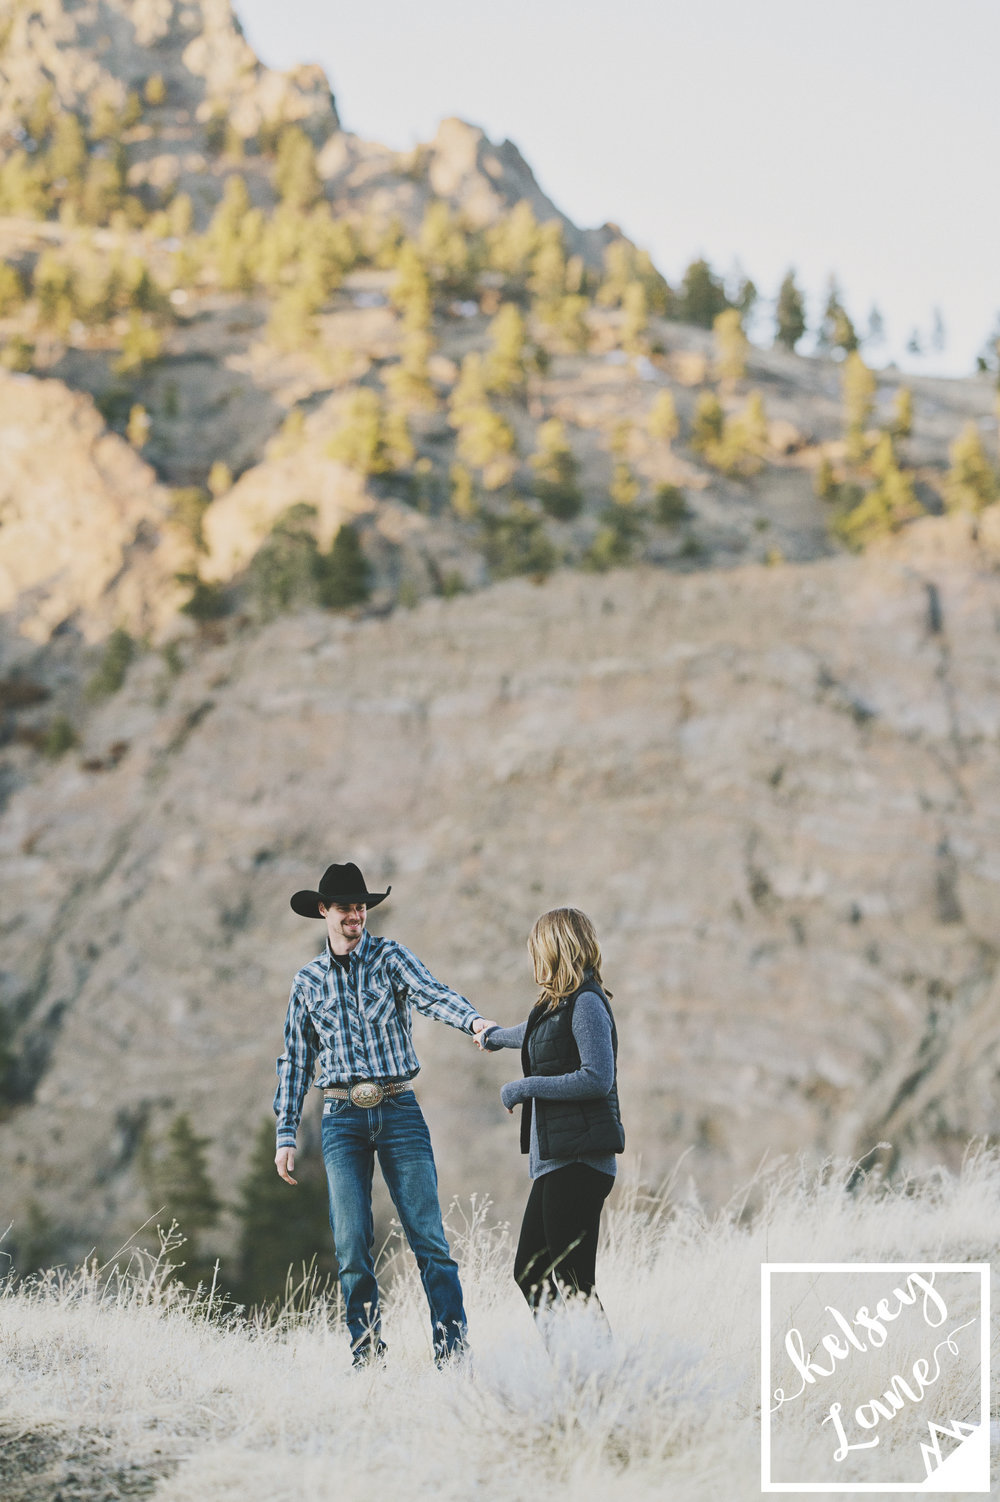 052 Montana River Engagement_Montana Wedding Photographer_Montana Engagement_Helena Engagement_Kelsey Lane Photography_Katlyn Kenyon + Jade Nystrom Engagement-0908.jpg